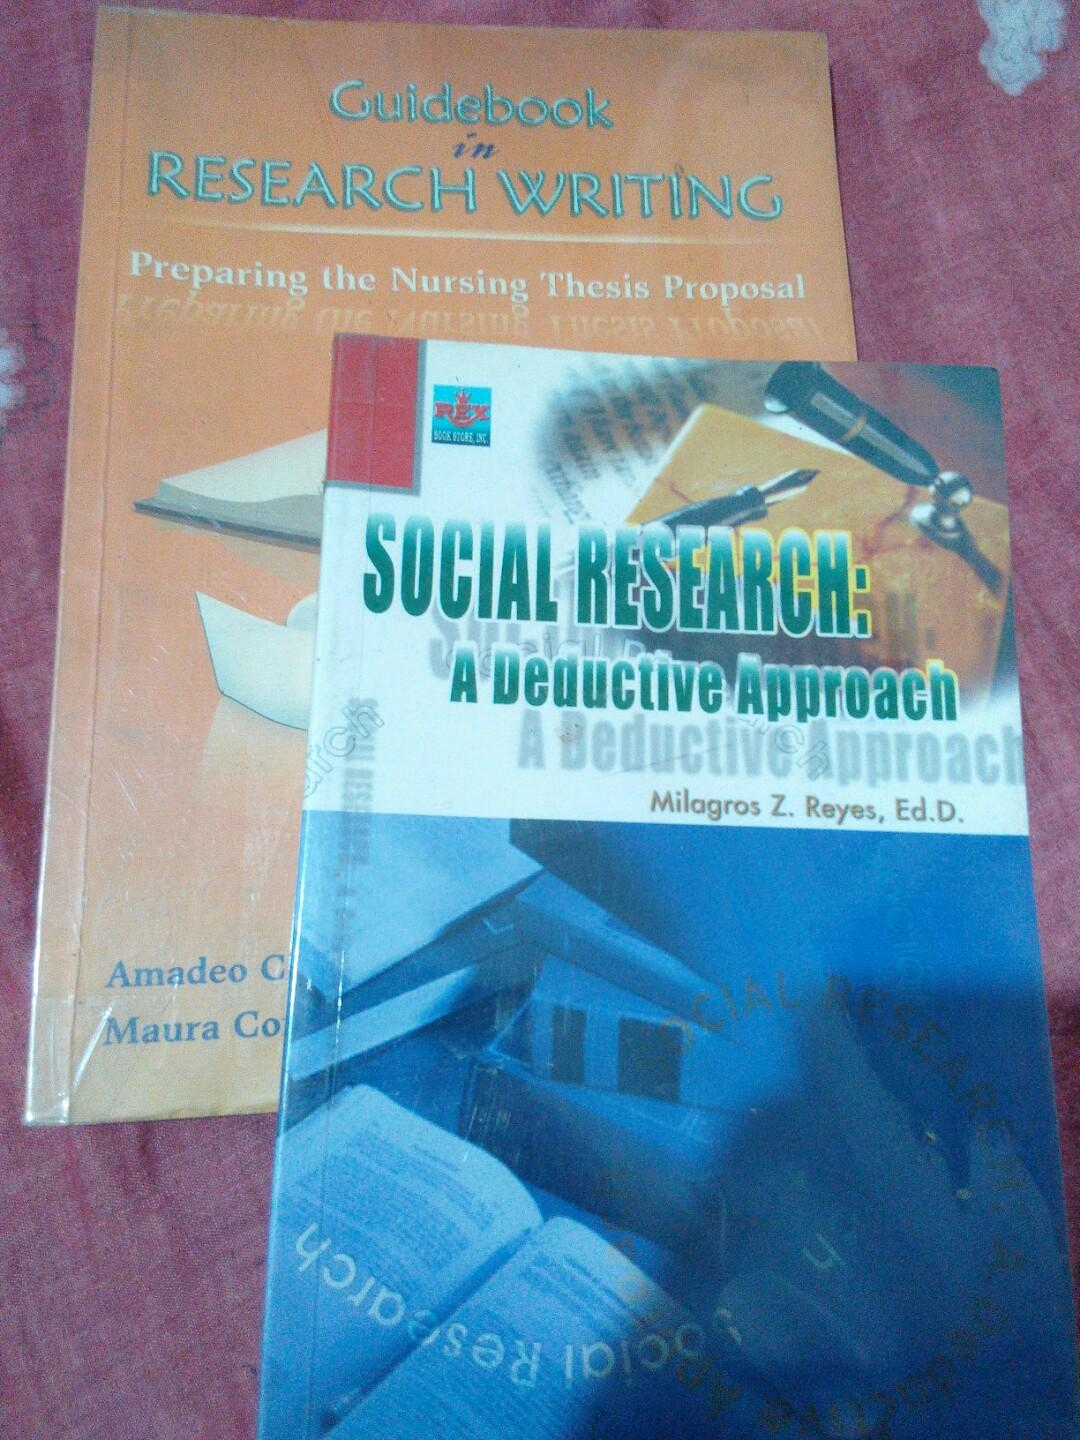 Guidebook in Research Writing & Social Research: A Deductive Approach